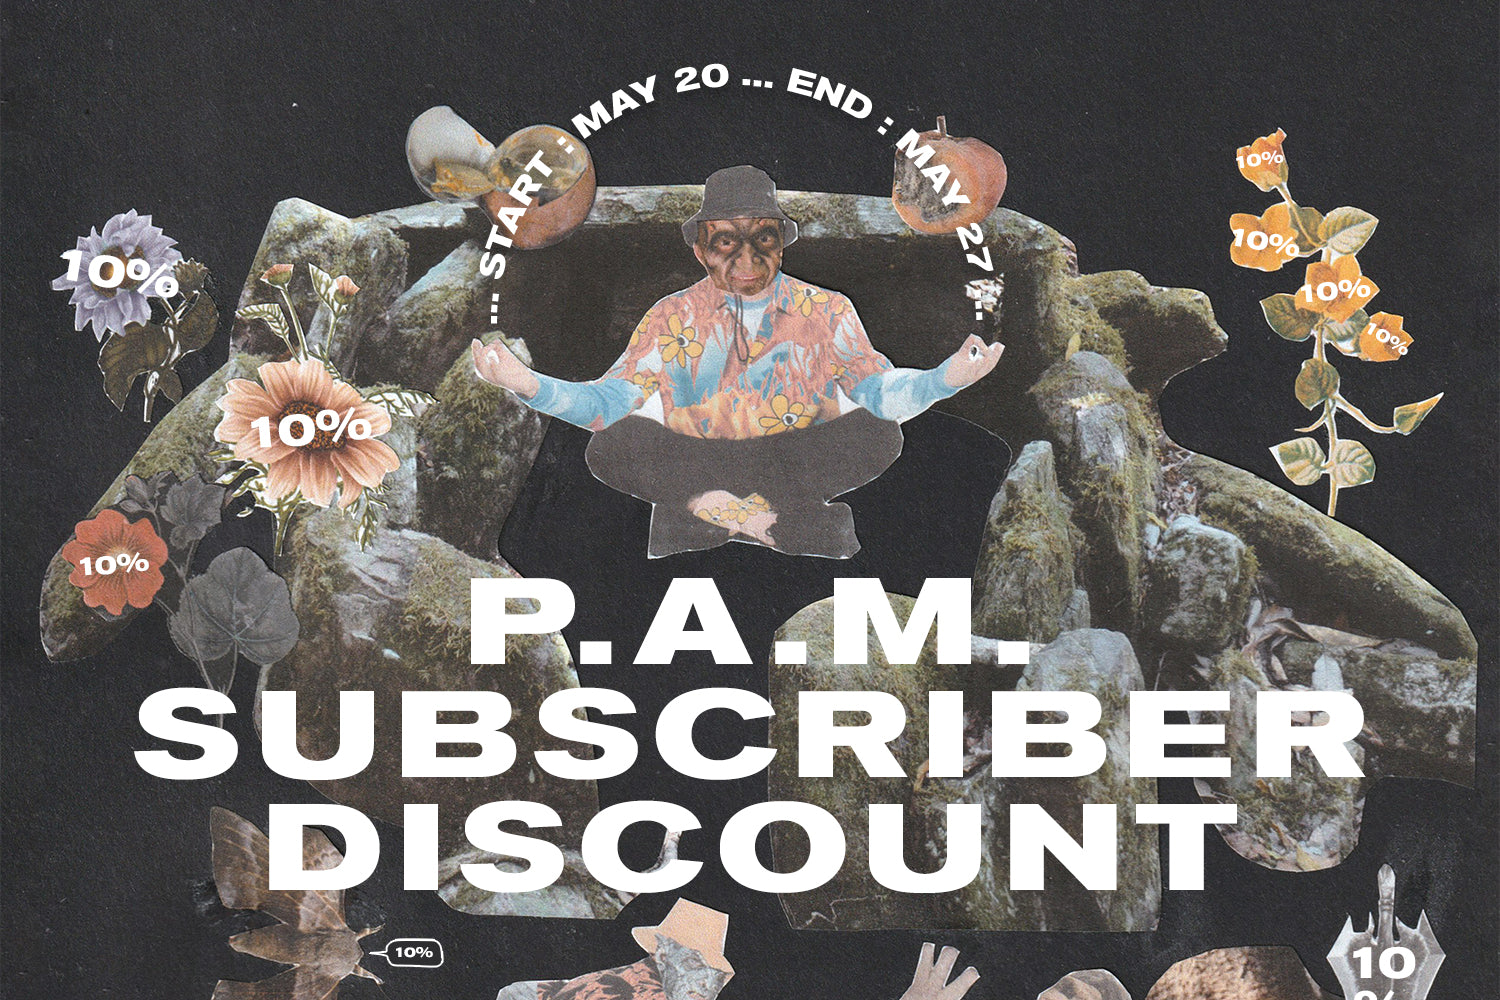 PAM Subscriber Discount : Sign up for 10% off.